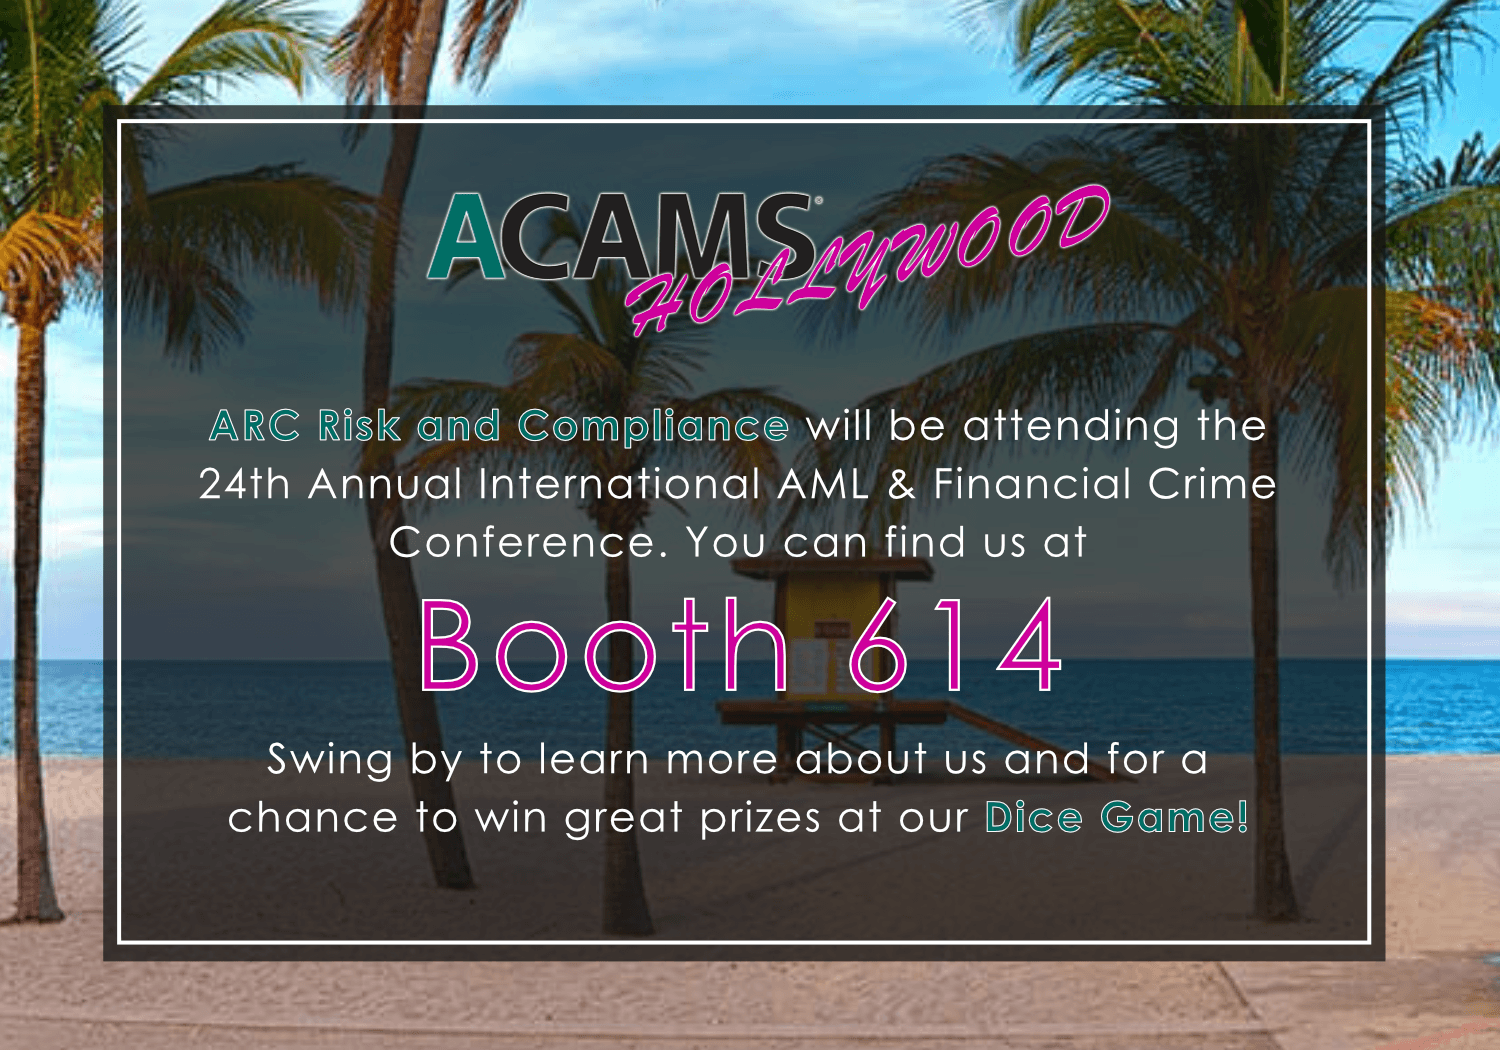 ACAMS 24th Annual International AML & Financial Crime Conference